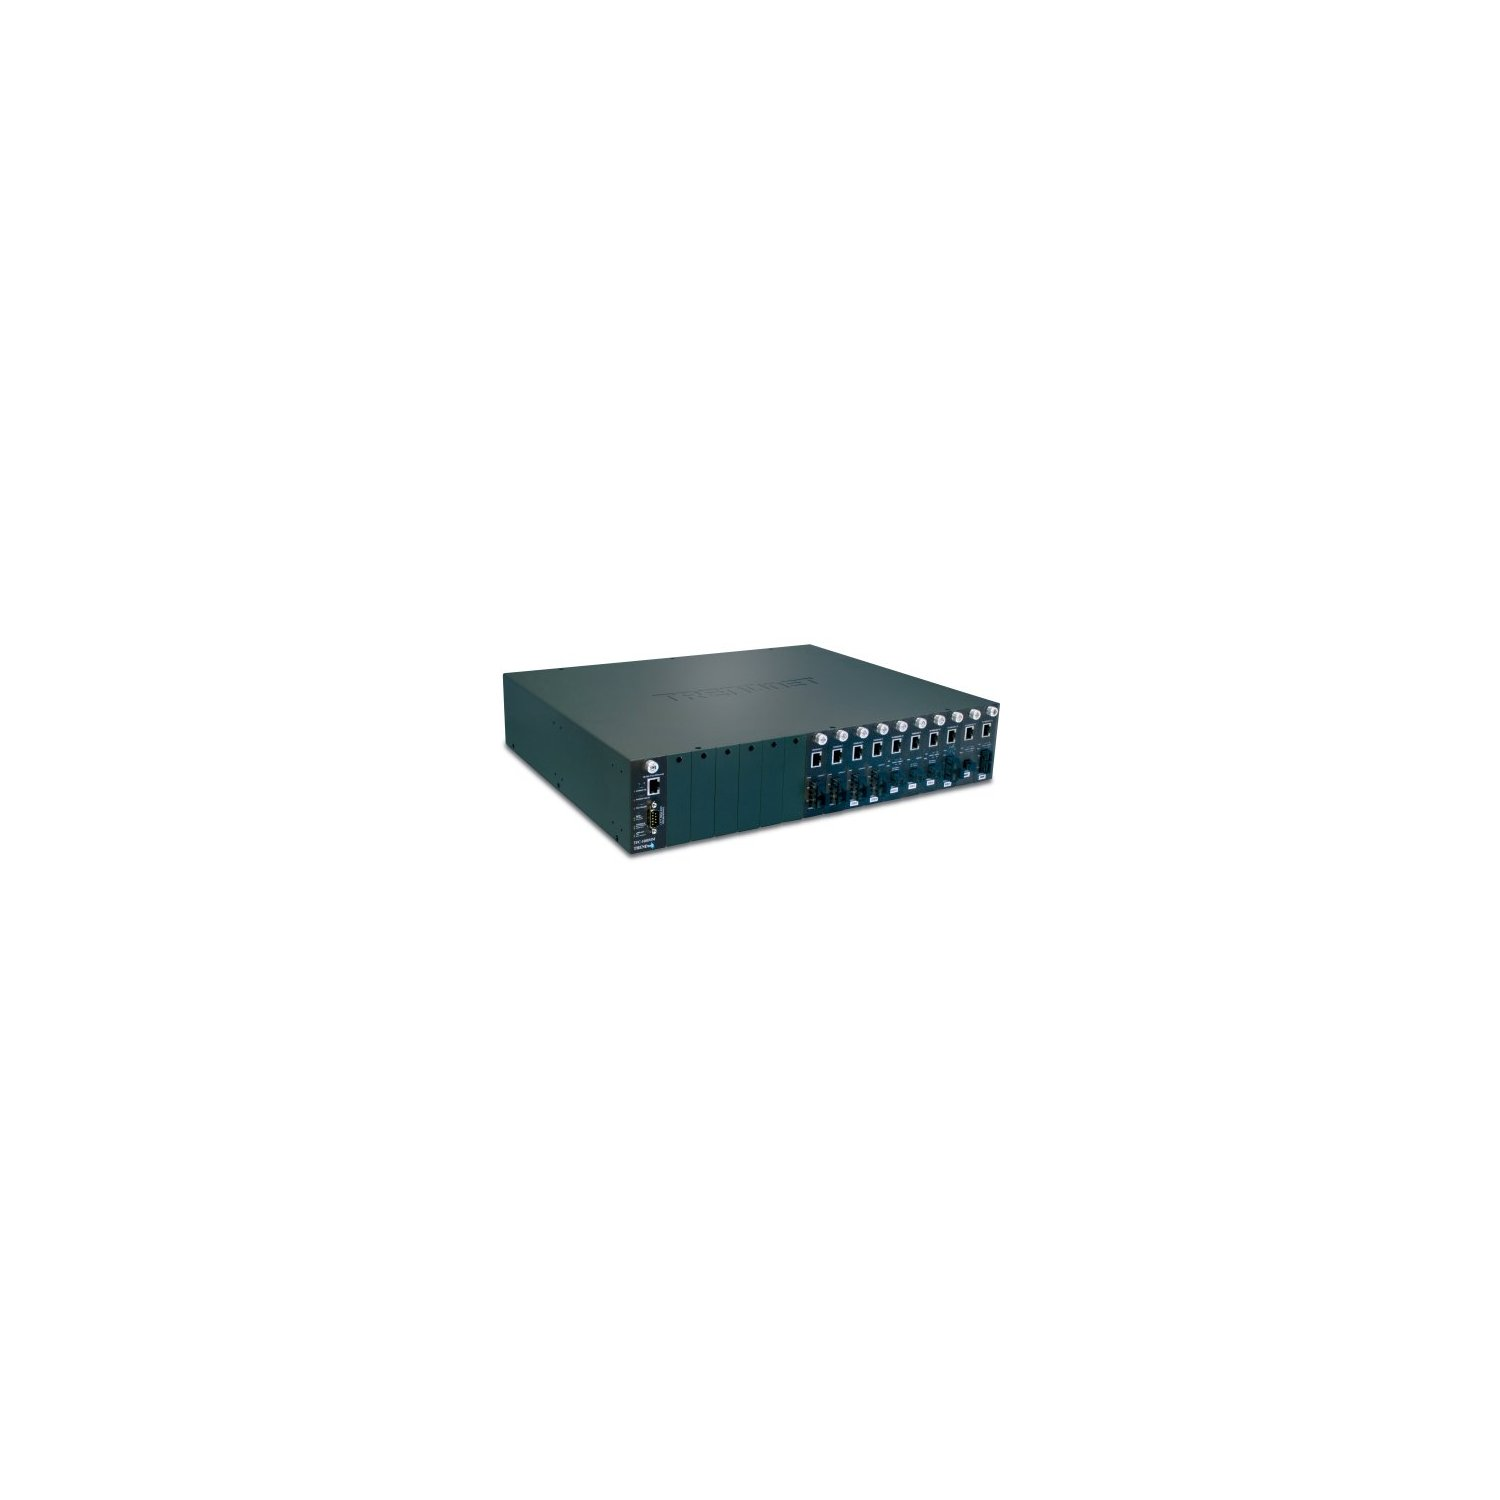 TRENDnet 16-Bay Fiber Converter Chassis System SNMP Management Module, TFC-1600 (Chassis Slot Snmp)